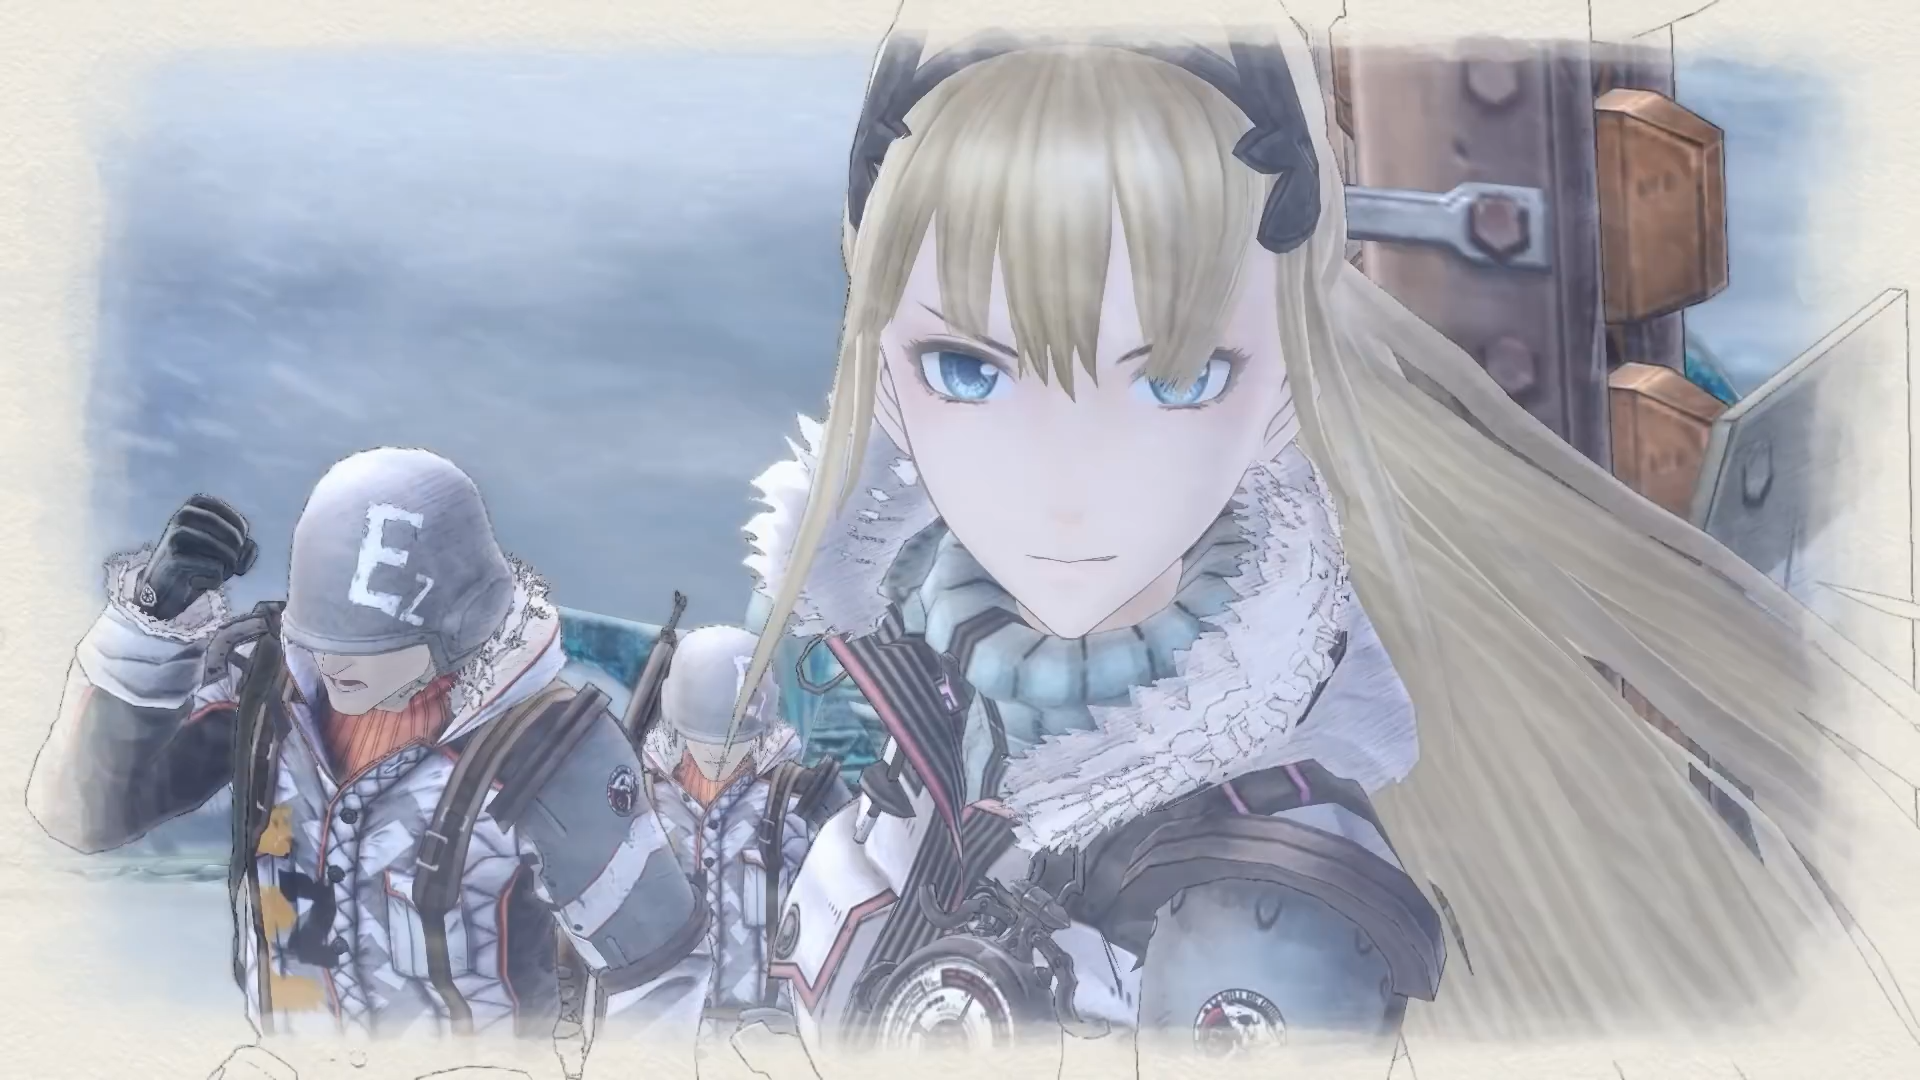 valkyria-chronicles-4-sega-tactical-rpg-jrpg-winter-ps4-xbox-one-nintendo-switch